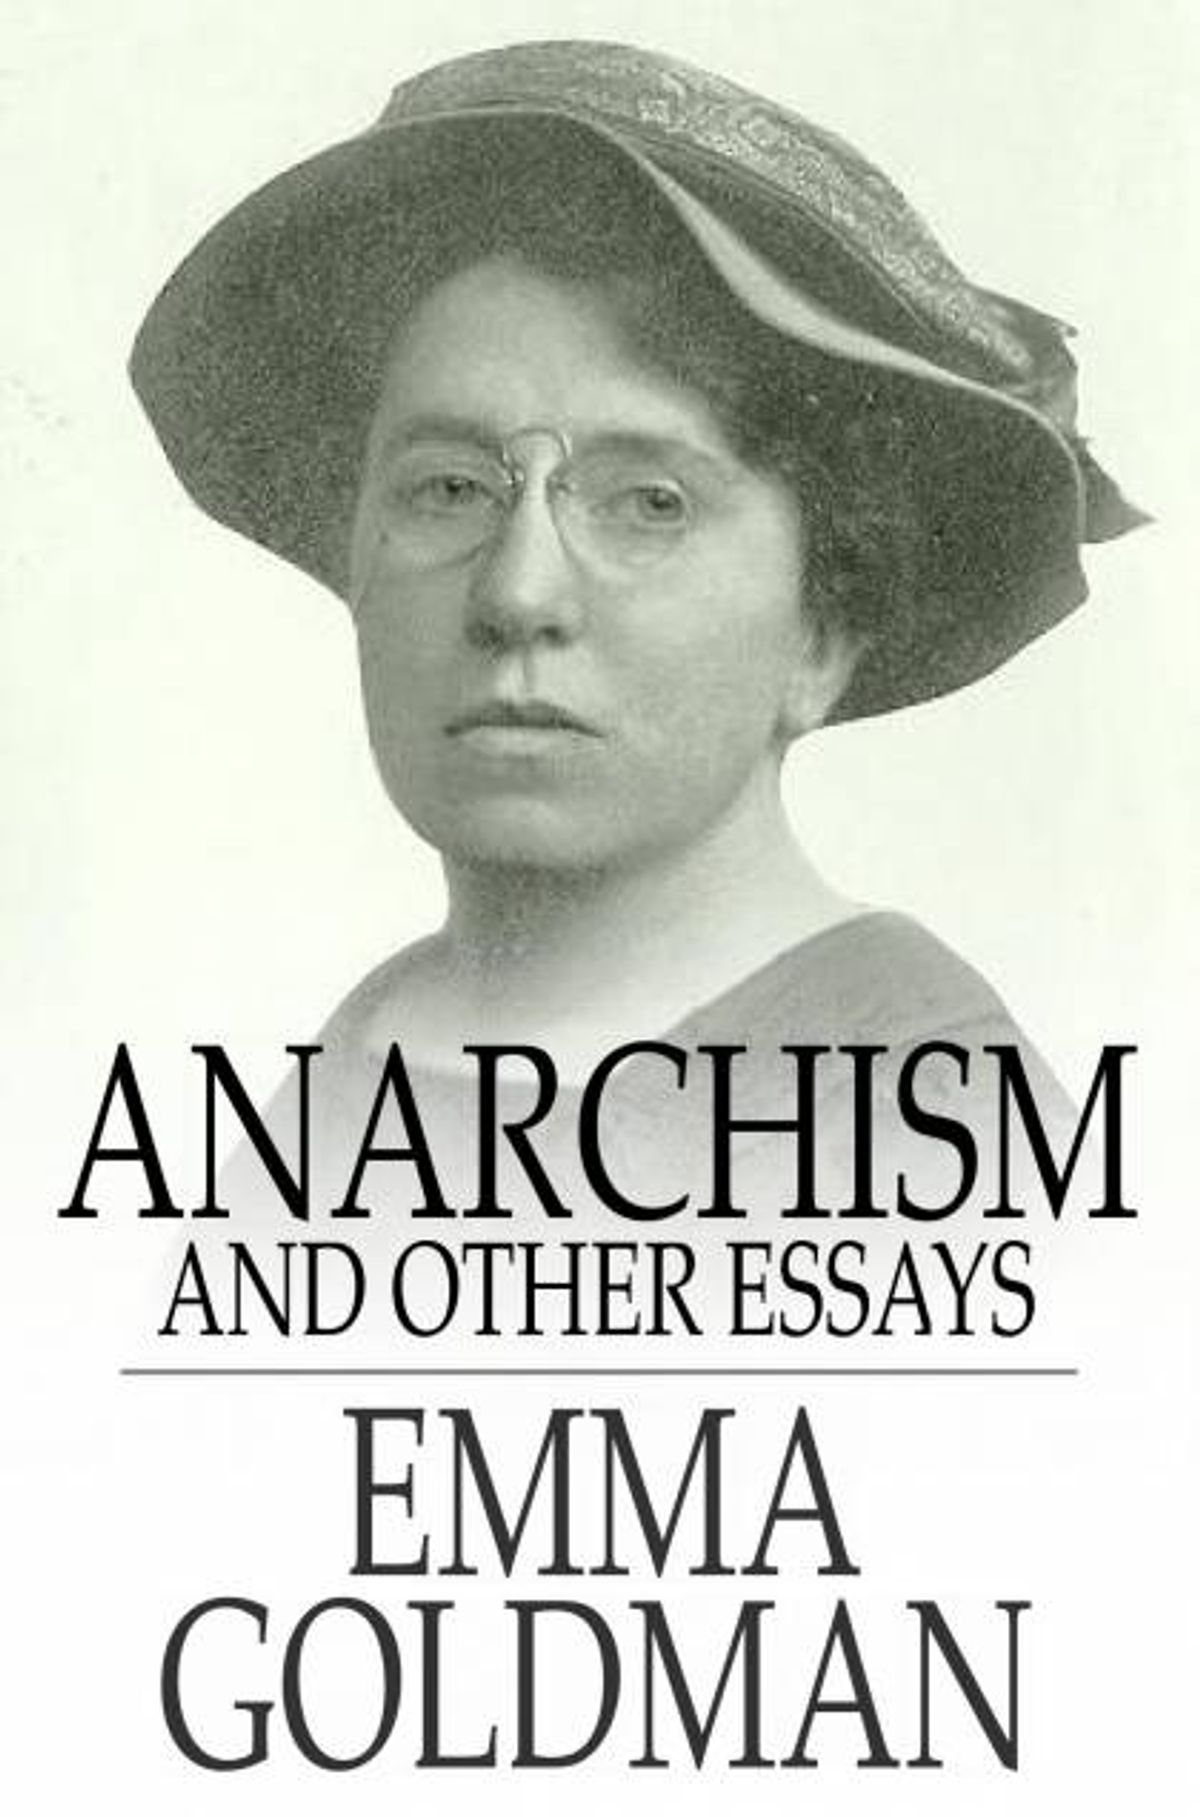 009 Anarchism And Other Essays Essay Incredible Emma Goldman Summary Mla Citation Full